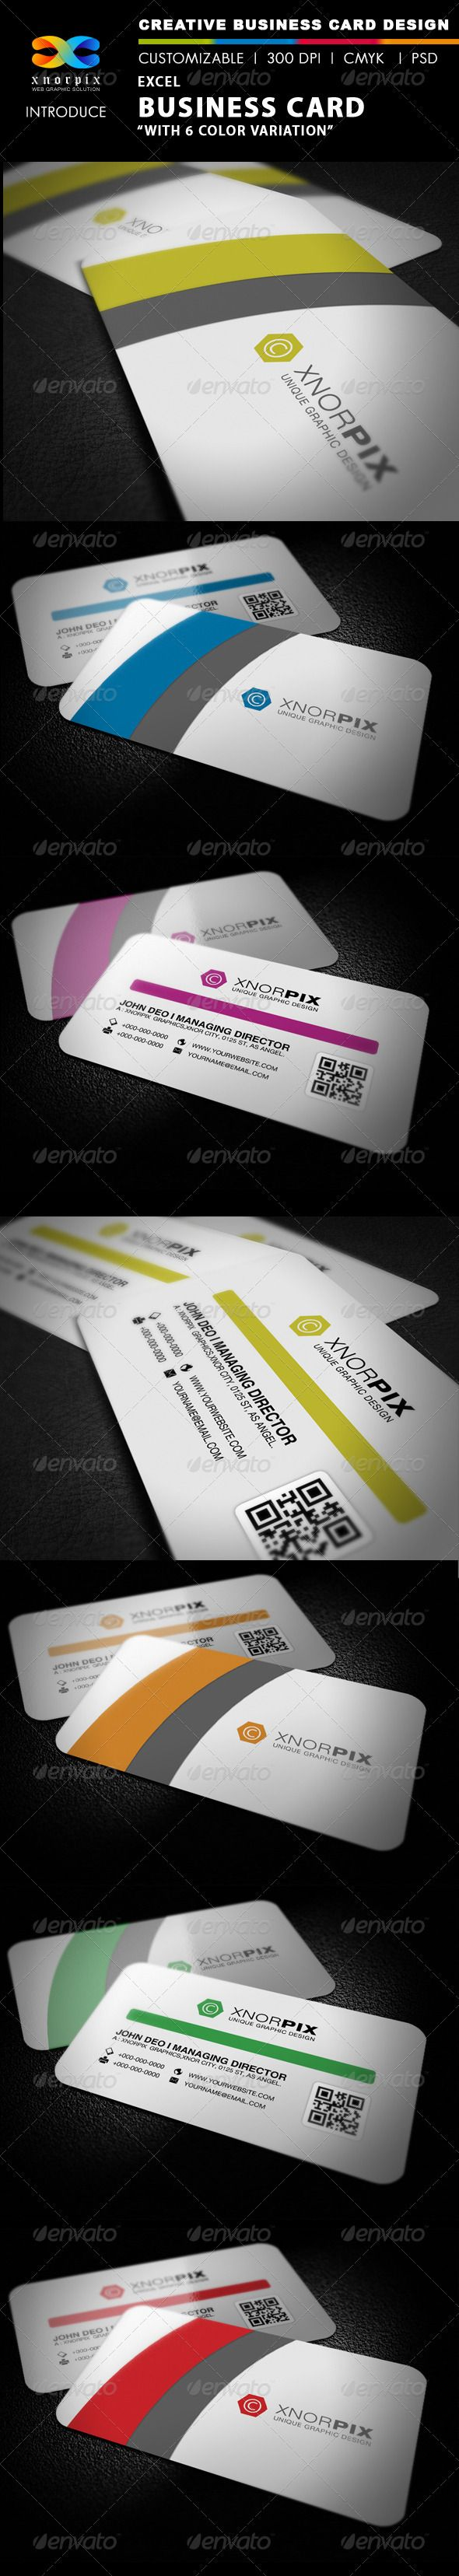 Excel business card business cards business and print templates excel business card reheart Image collections